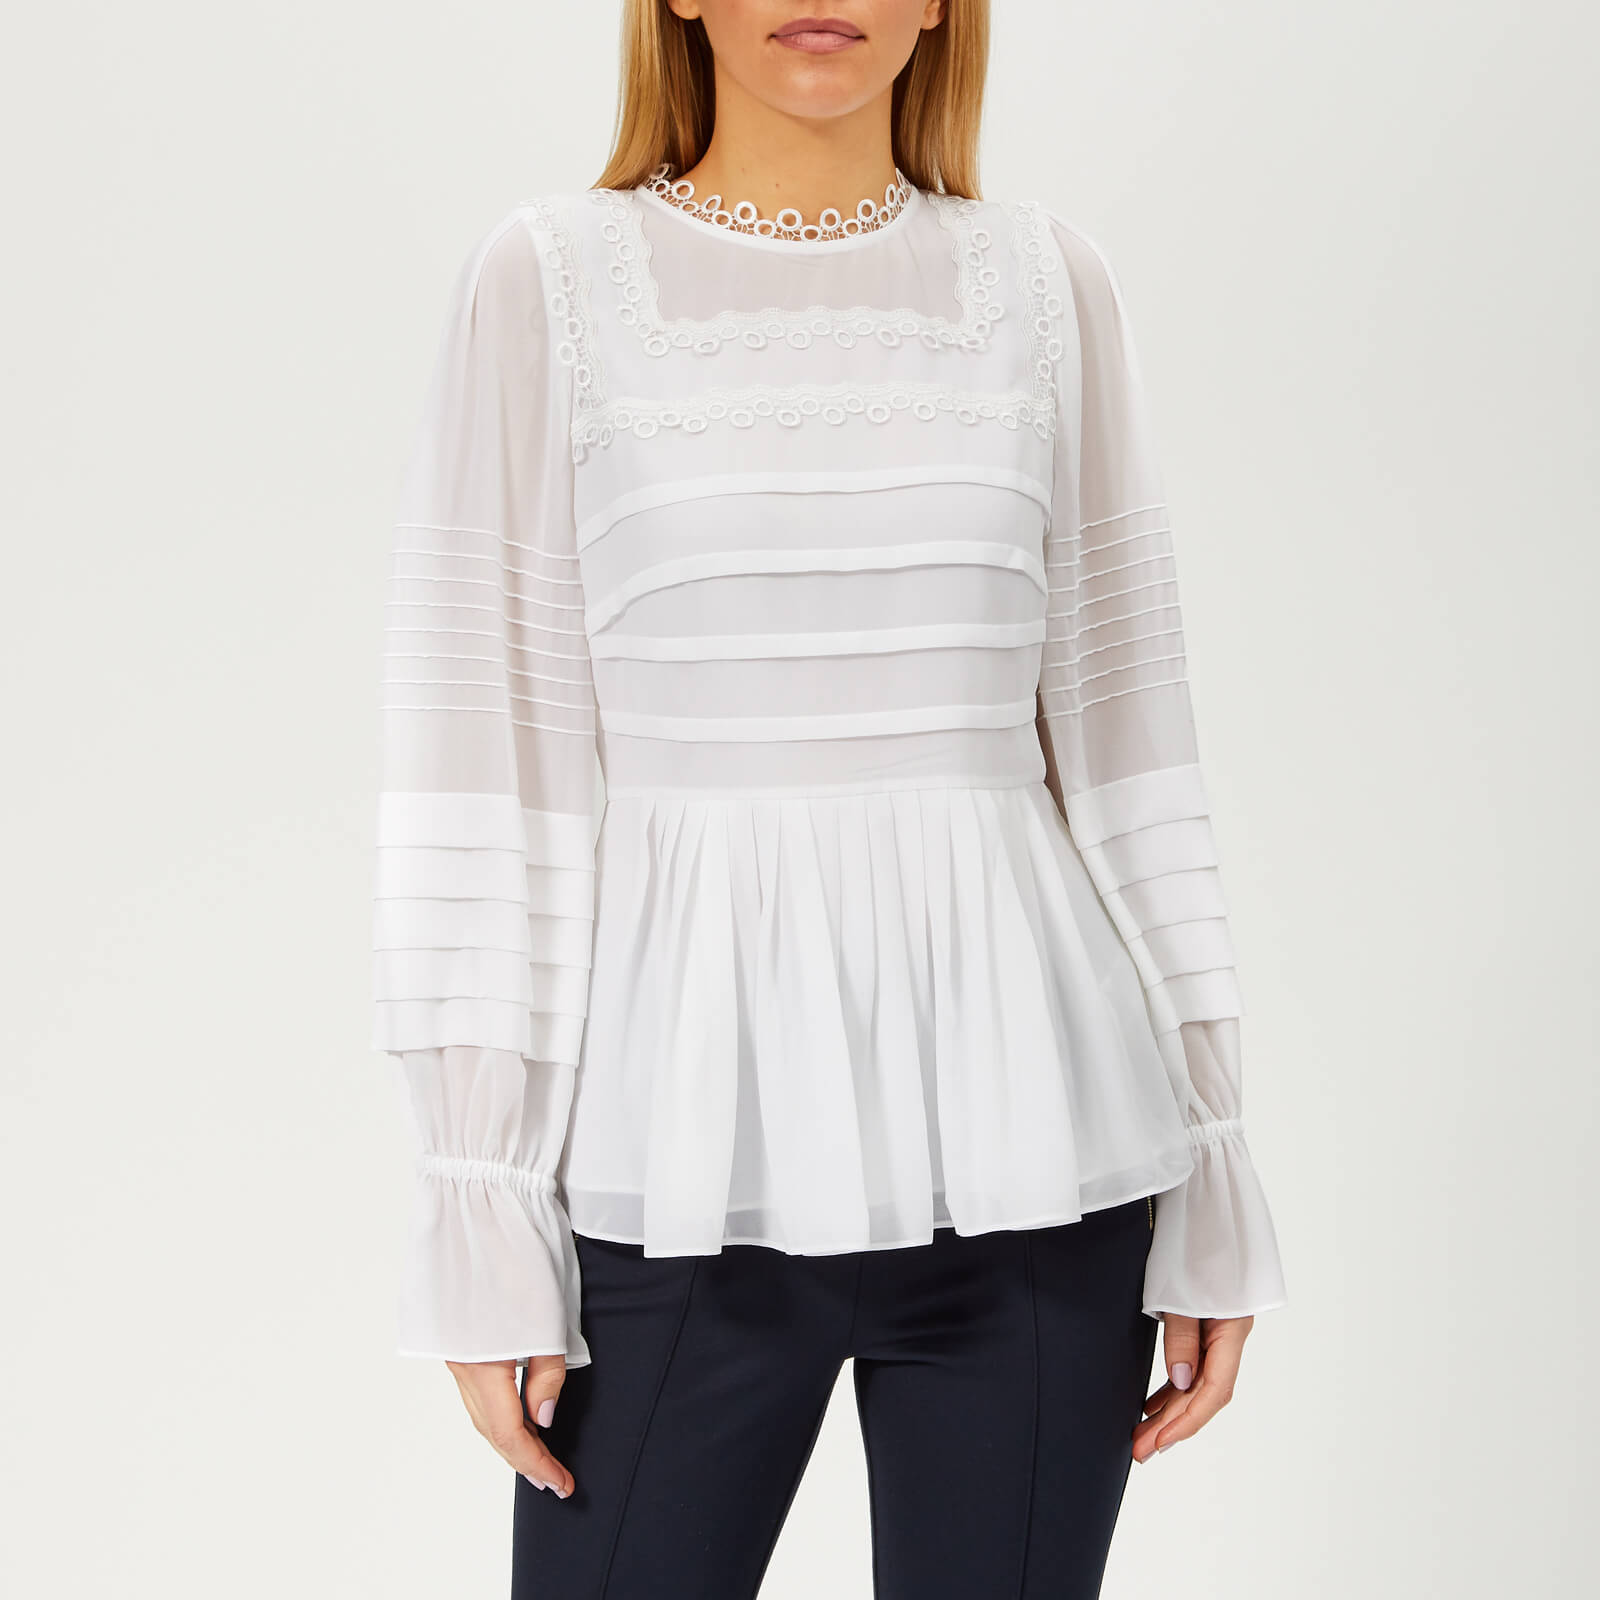 b1a29ff01 Ted Baker Women s Roobee Pintuck Detailing Long Sleeve Top - White Womens  Clothing